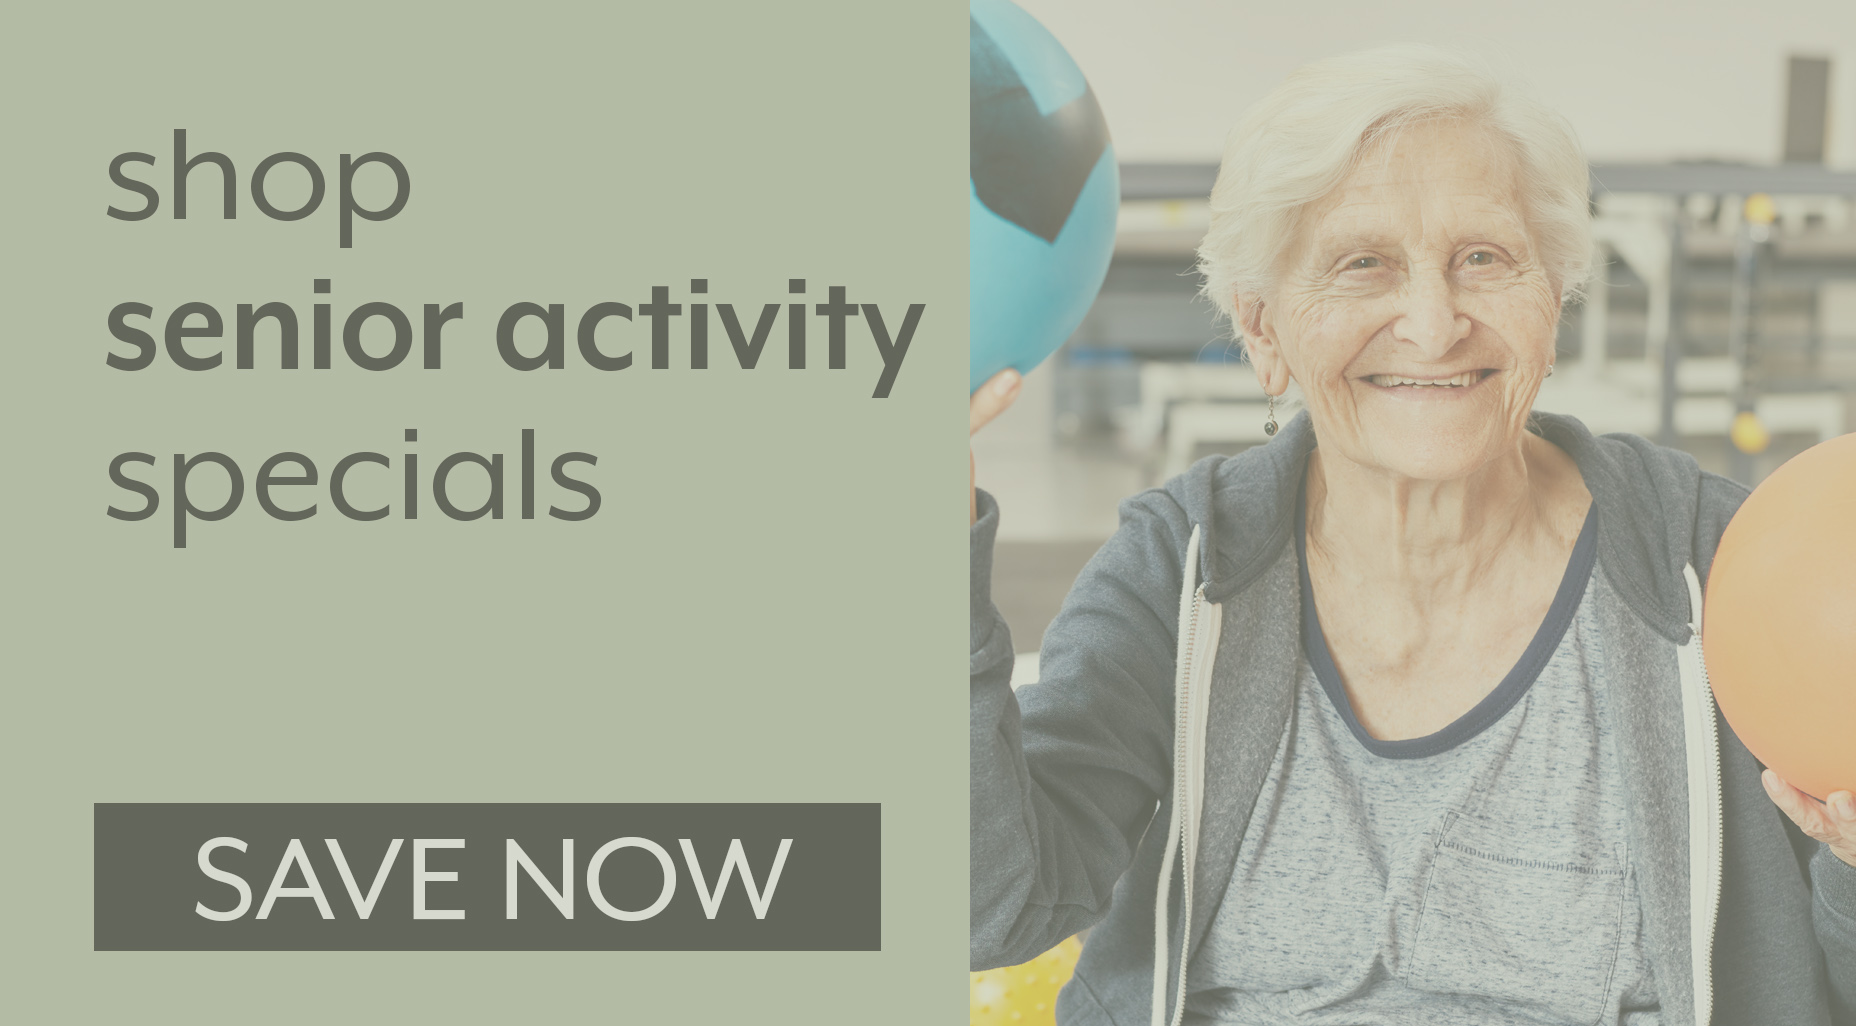 SAVE NOW ON SENIOR ACTIVITY SPECIALS